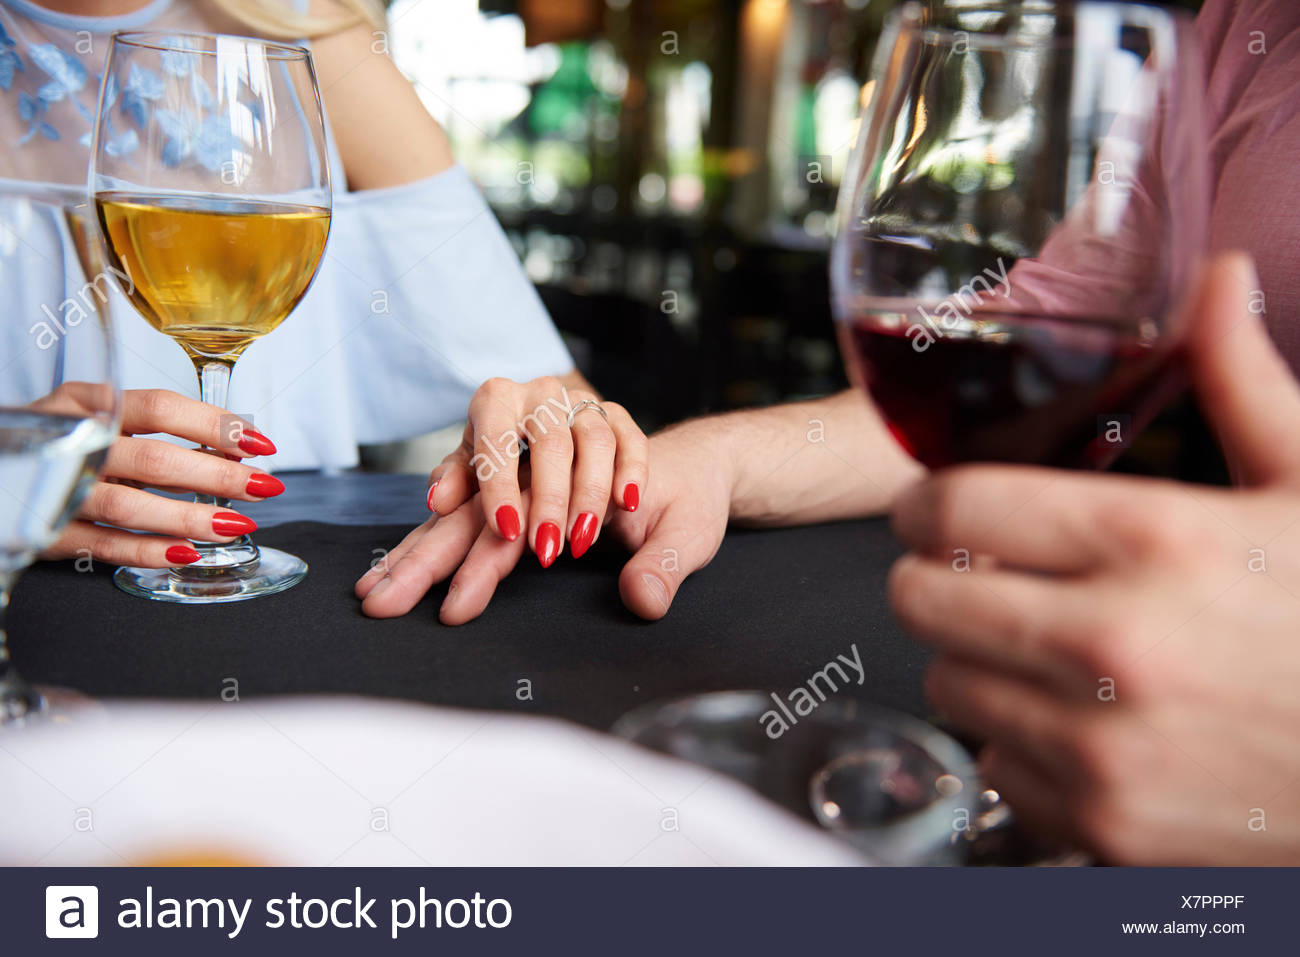 Cropped view of woman's hand on boyfriend's hand at restaurant table - Stock Image